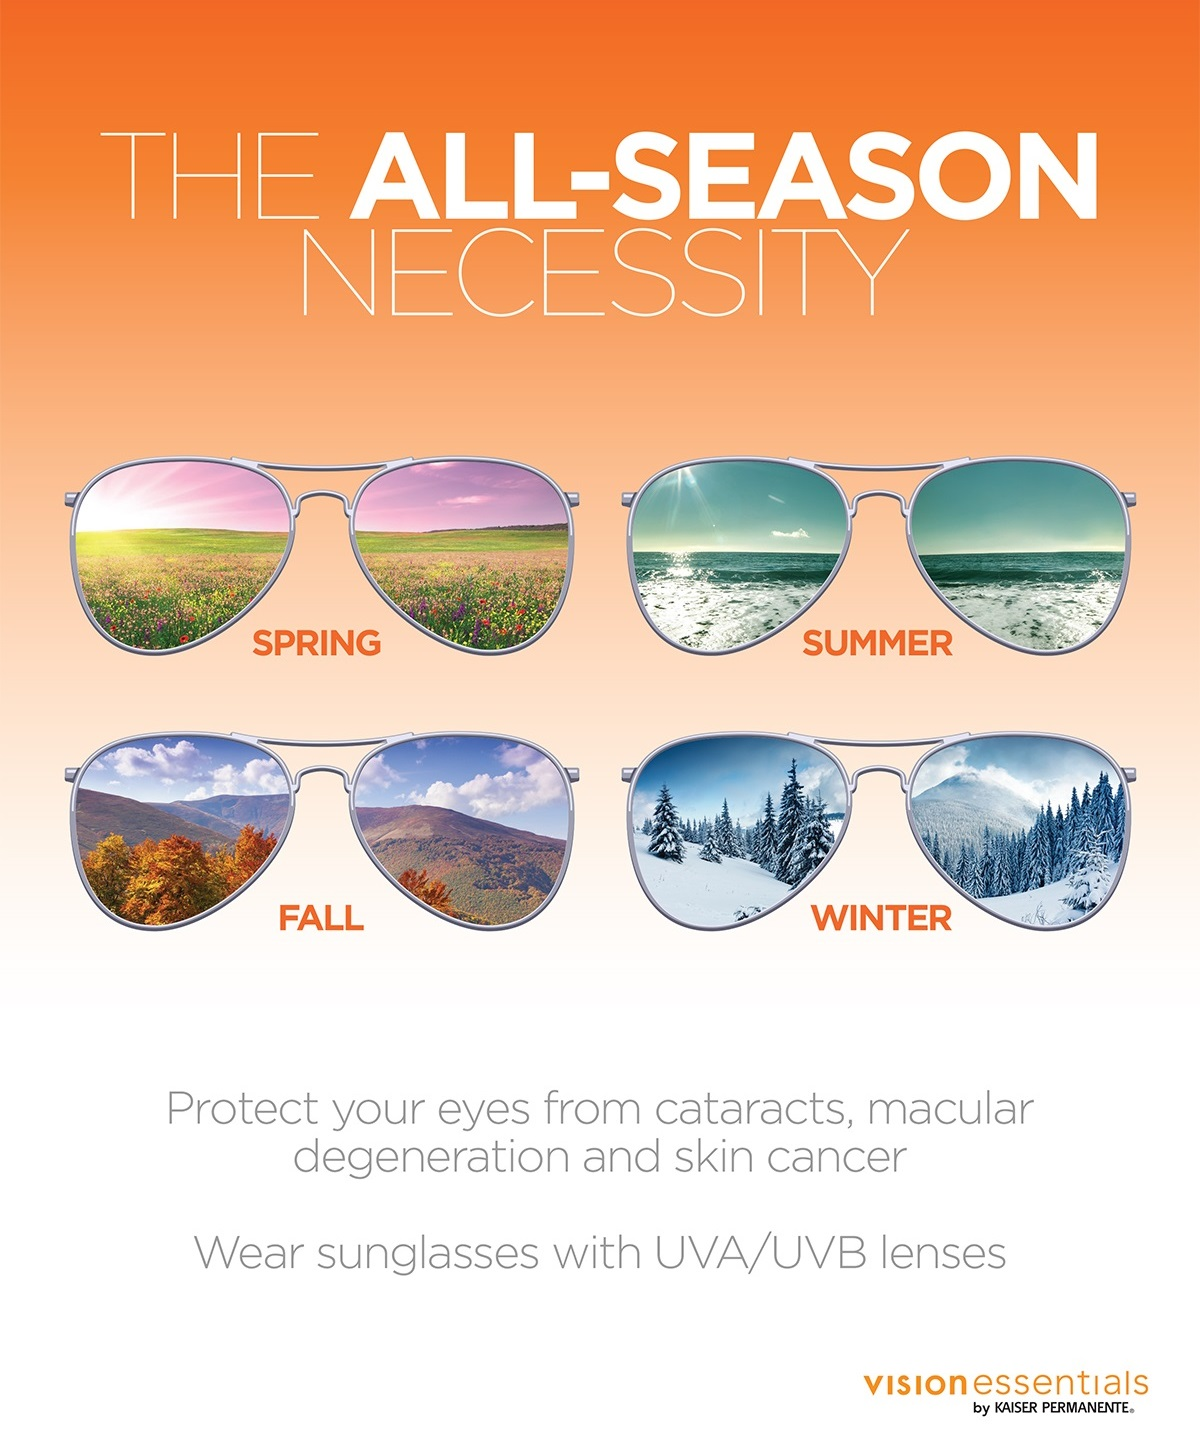 Wear sunglasses with UVA/UVB lenses to protect your eyes from cataracts, macular degeneration and skin cancer image